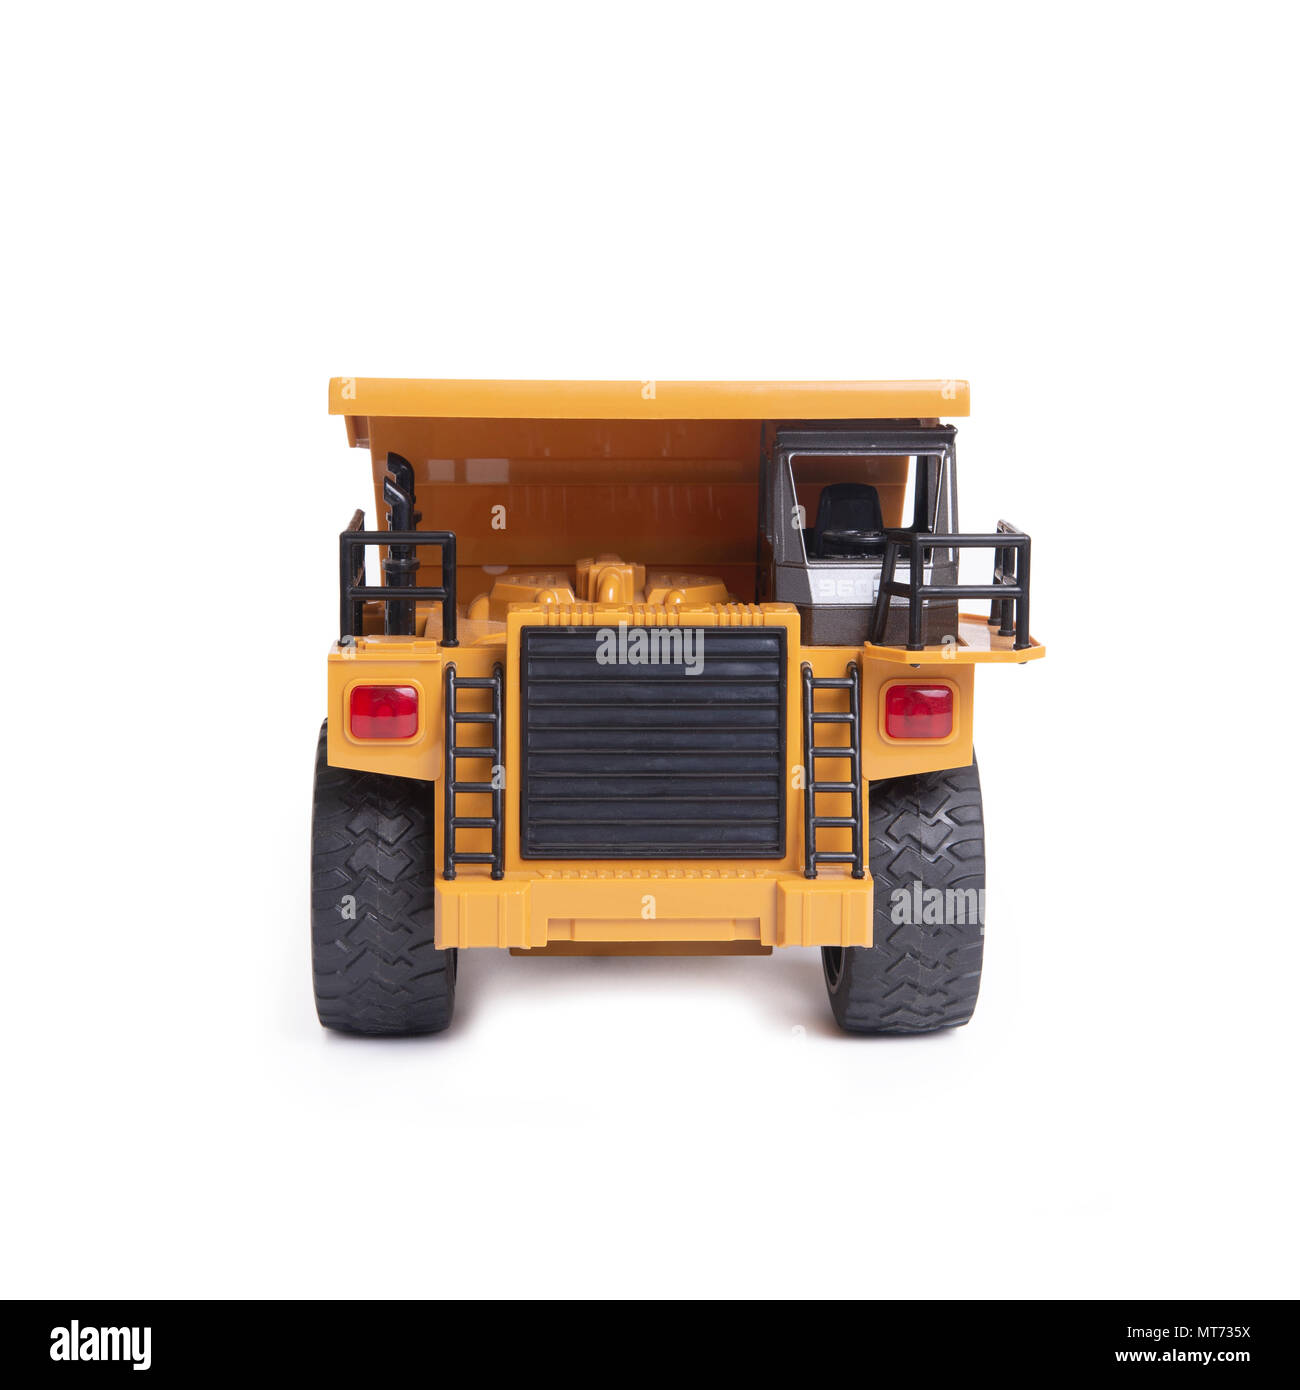 Front view of yellow truck toy model on white background. - Stock Image